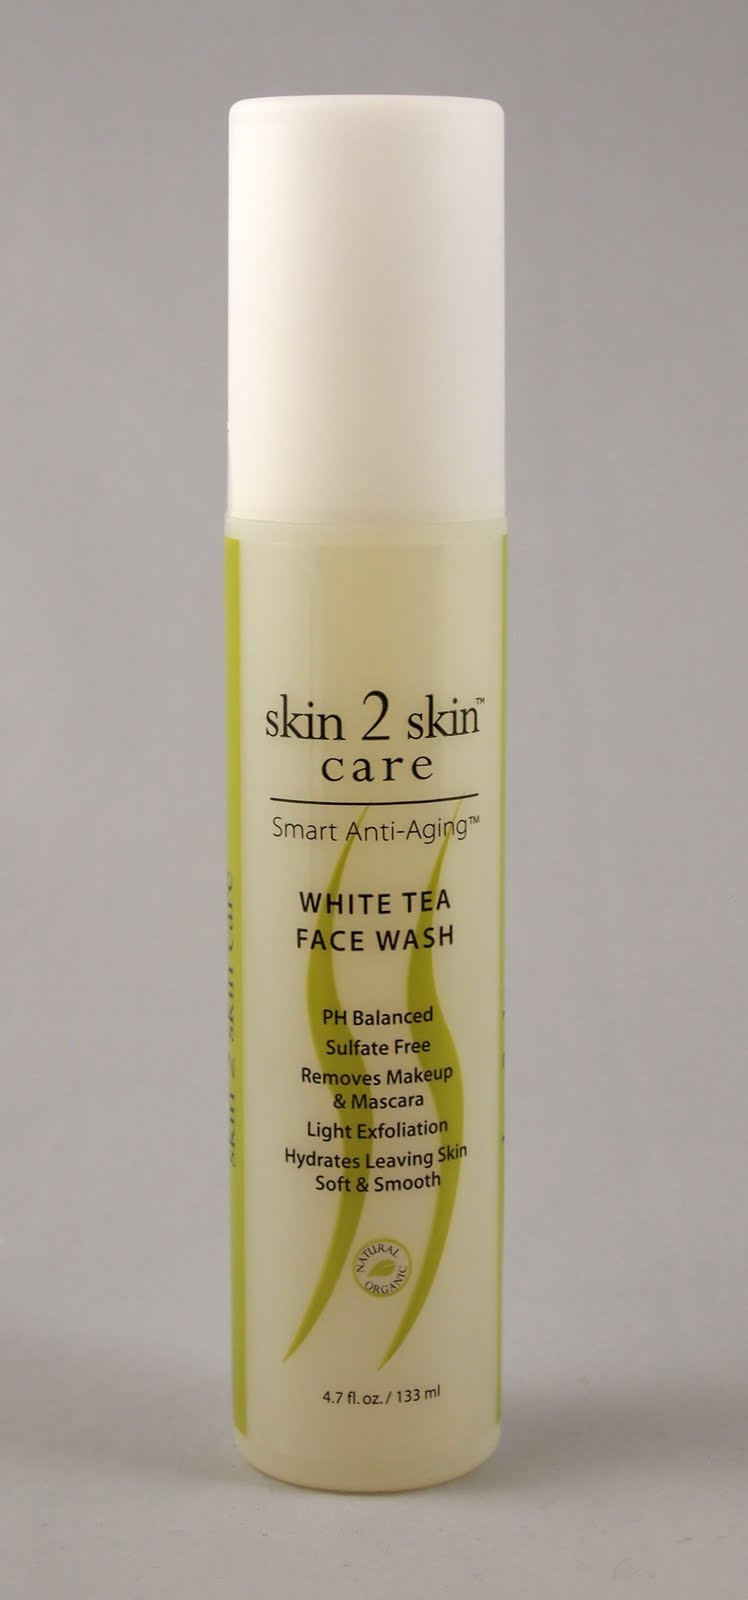 Kaylinu0026#39;s Kit Review Skin 2 Skin Care White Tea Face Wash